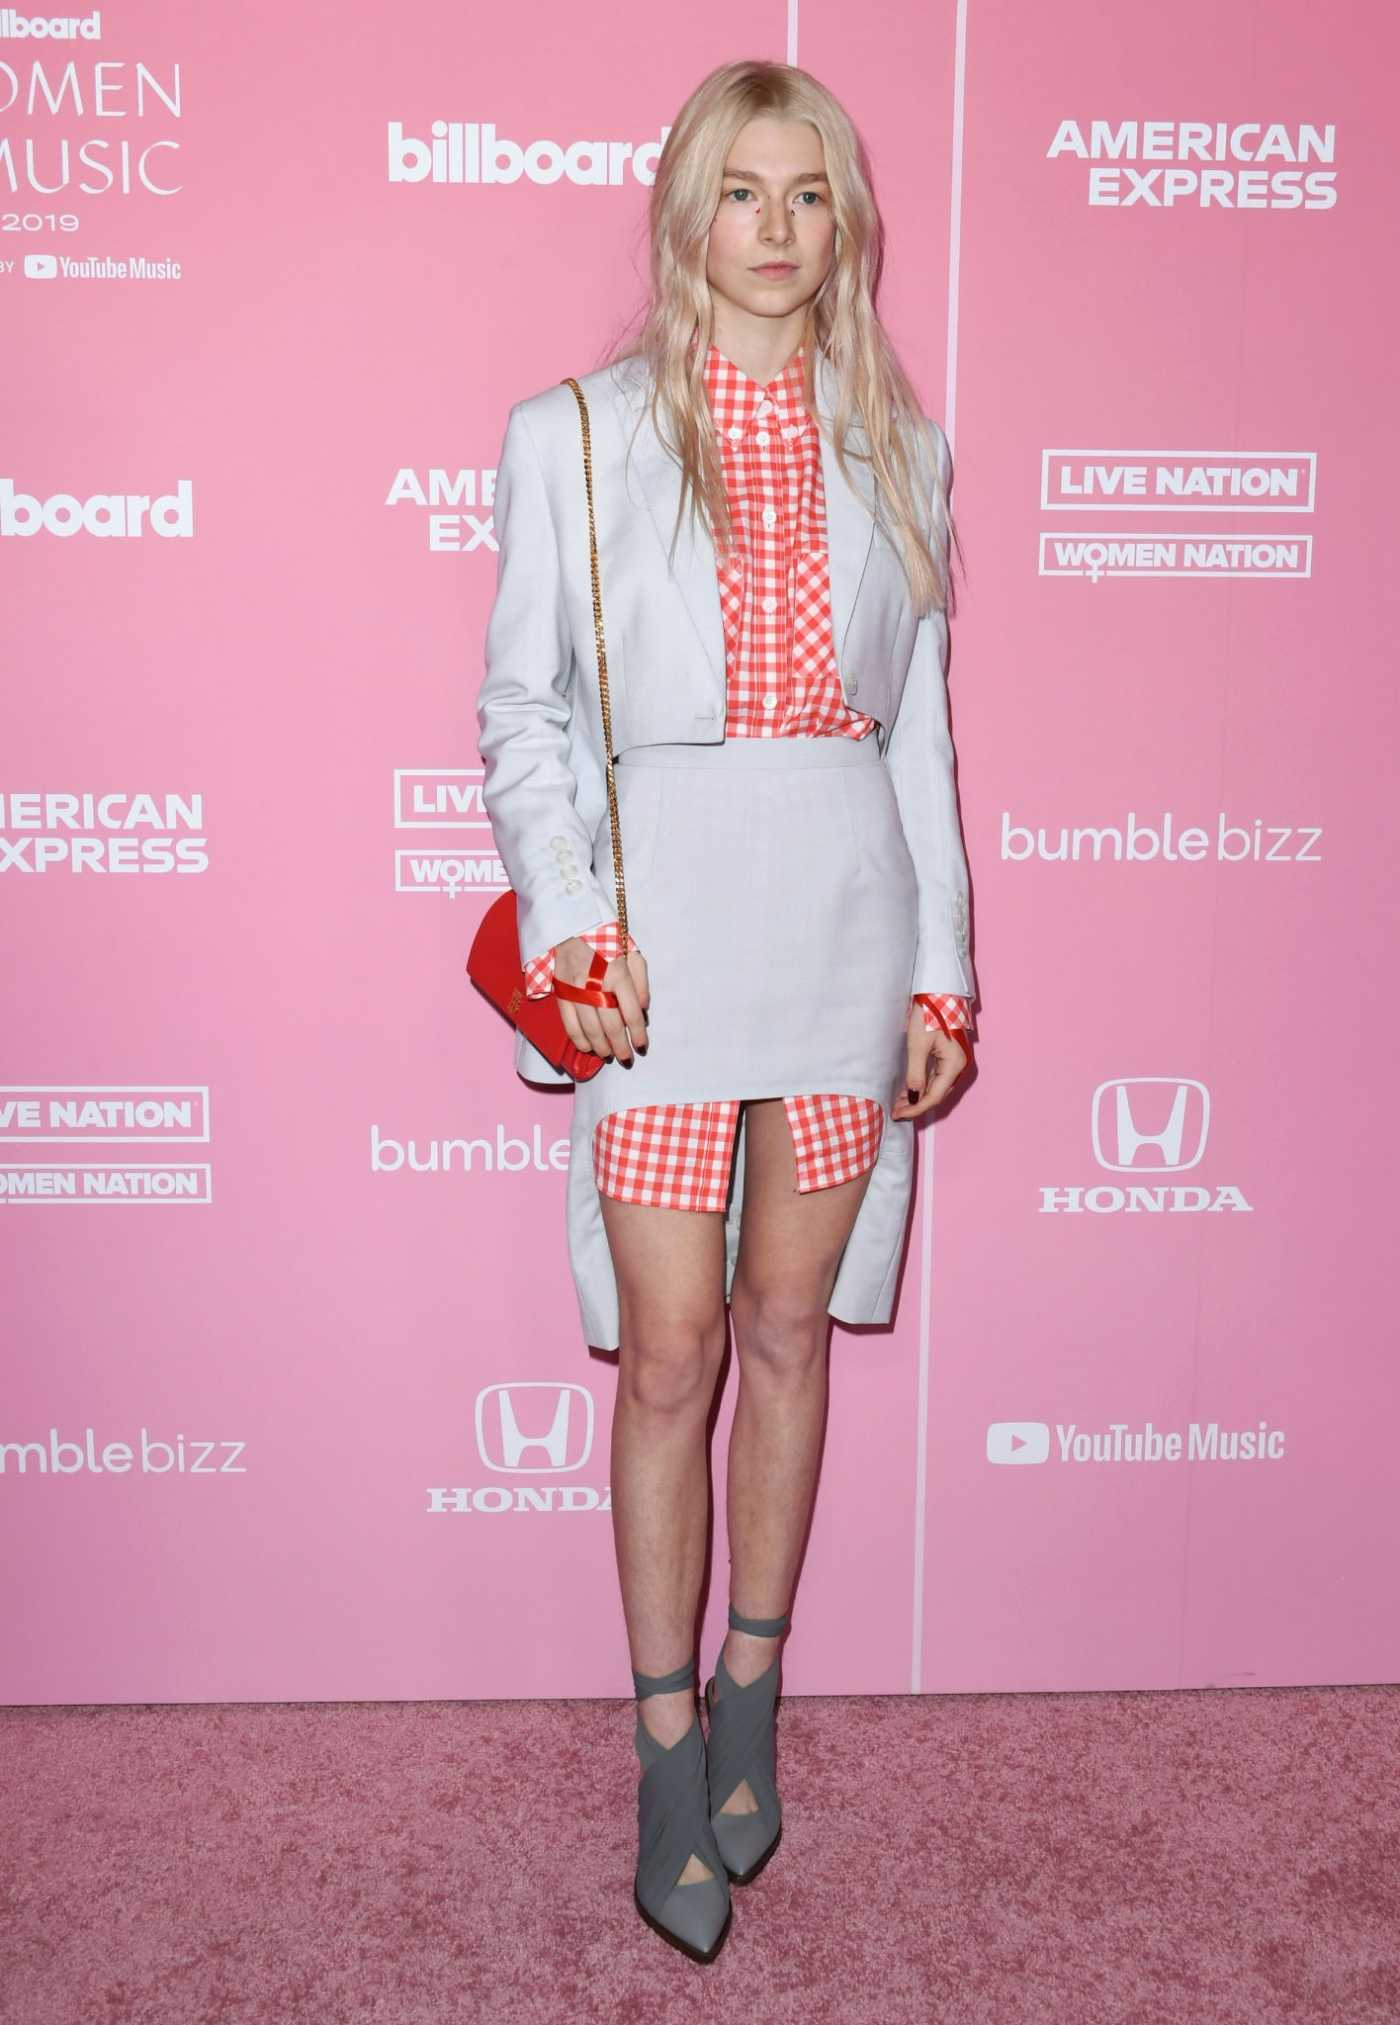 Hunter Schafer Attends 2019 Billboard Women in Music at Hollywood Palladium in Hollywood 12/12/2019